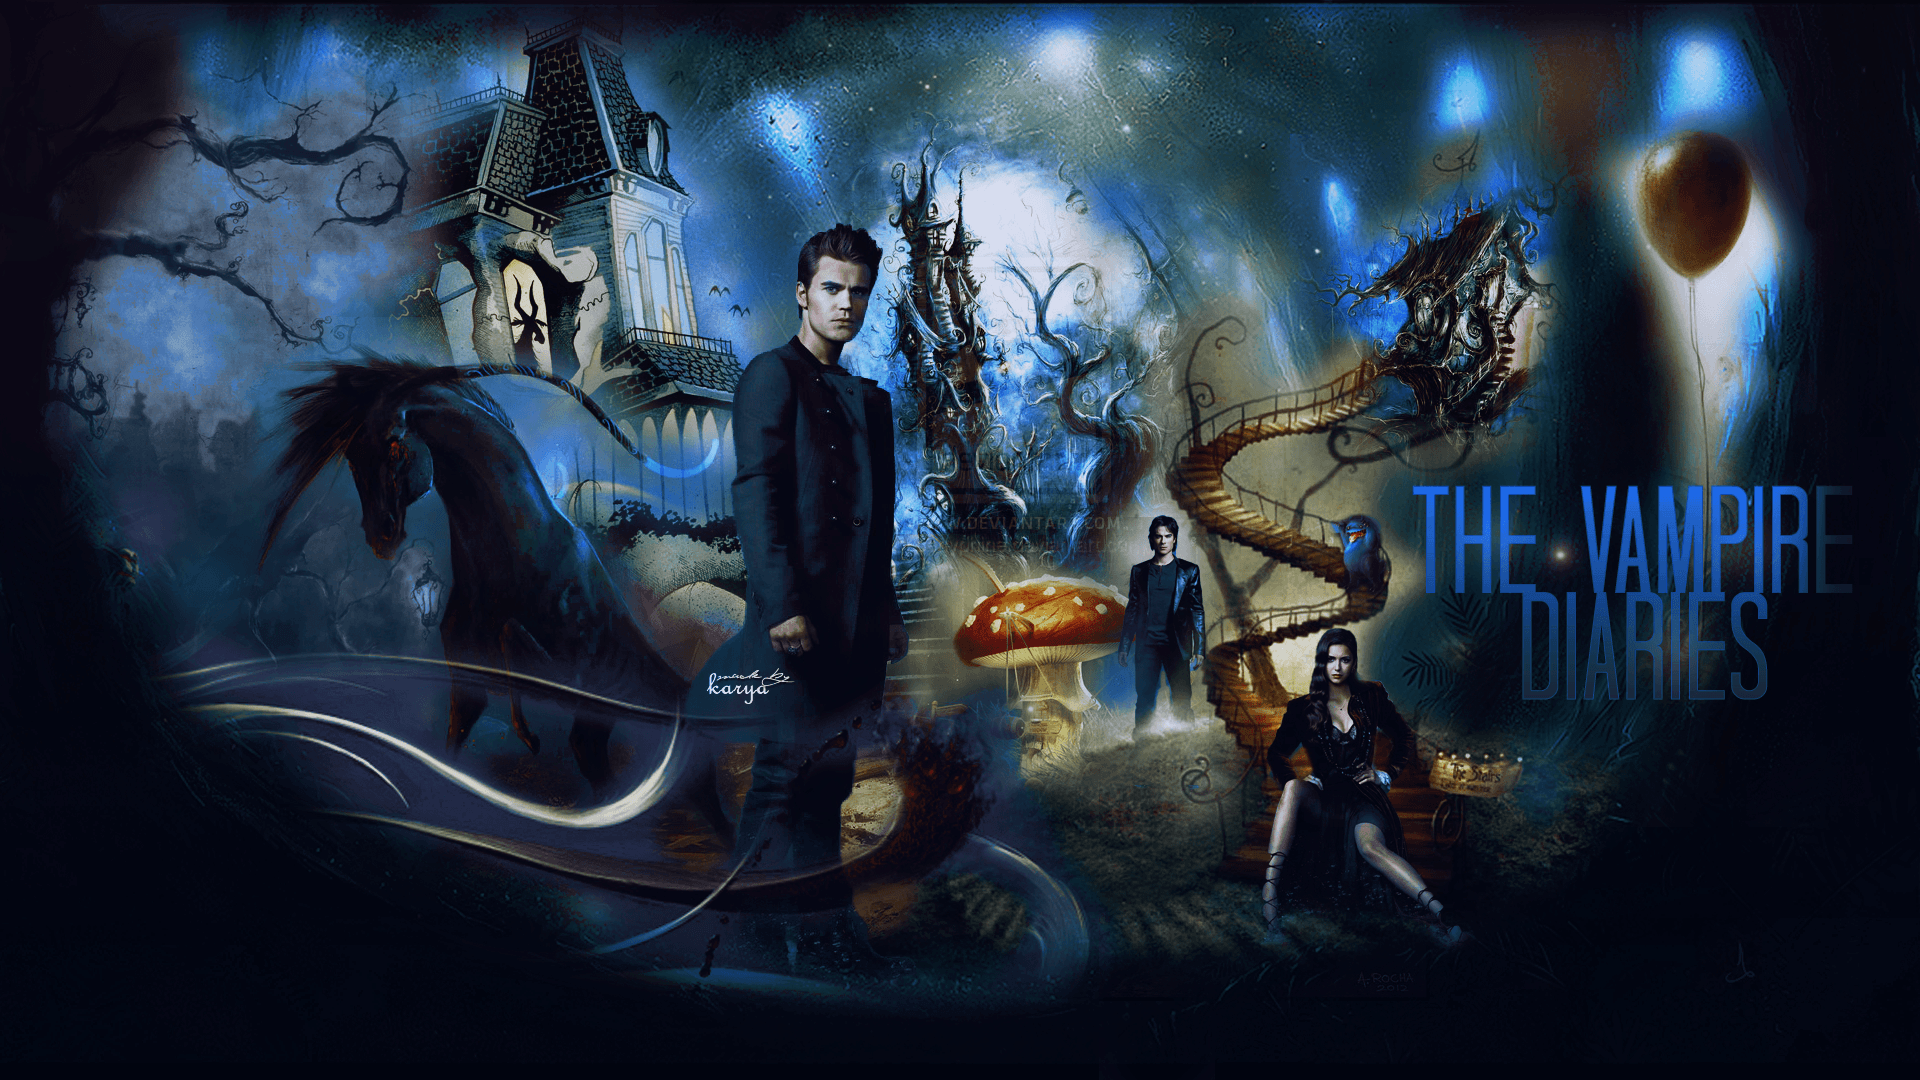 The Vampire Diaries Wallpapers by justRomanova.deviantart